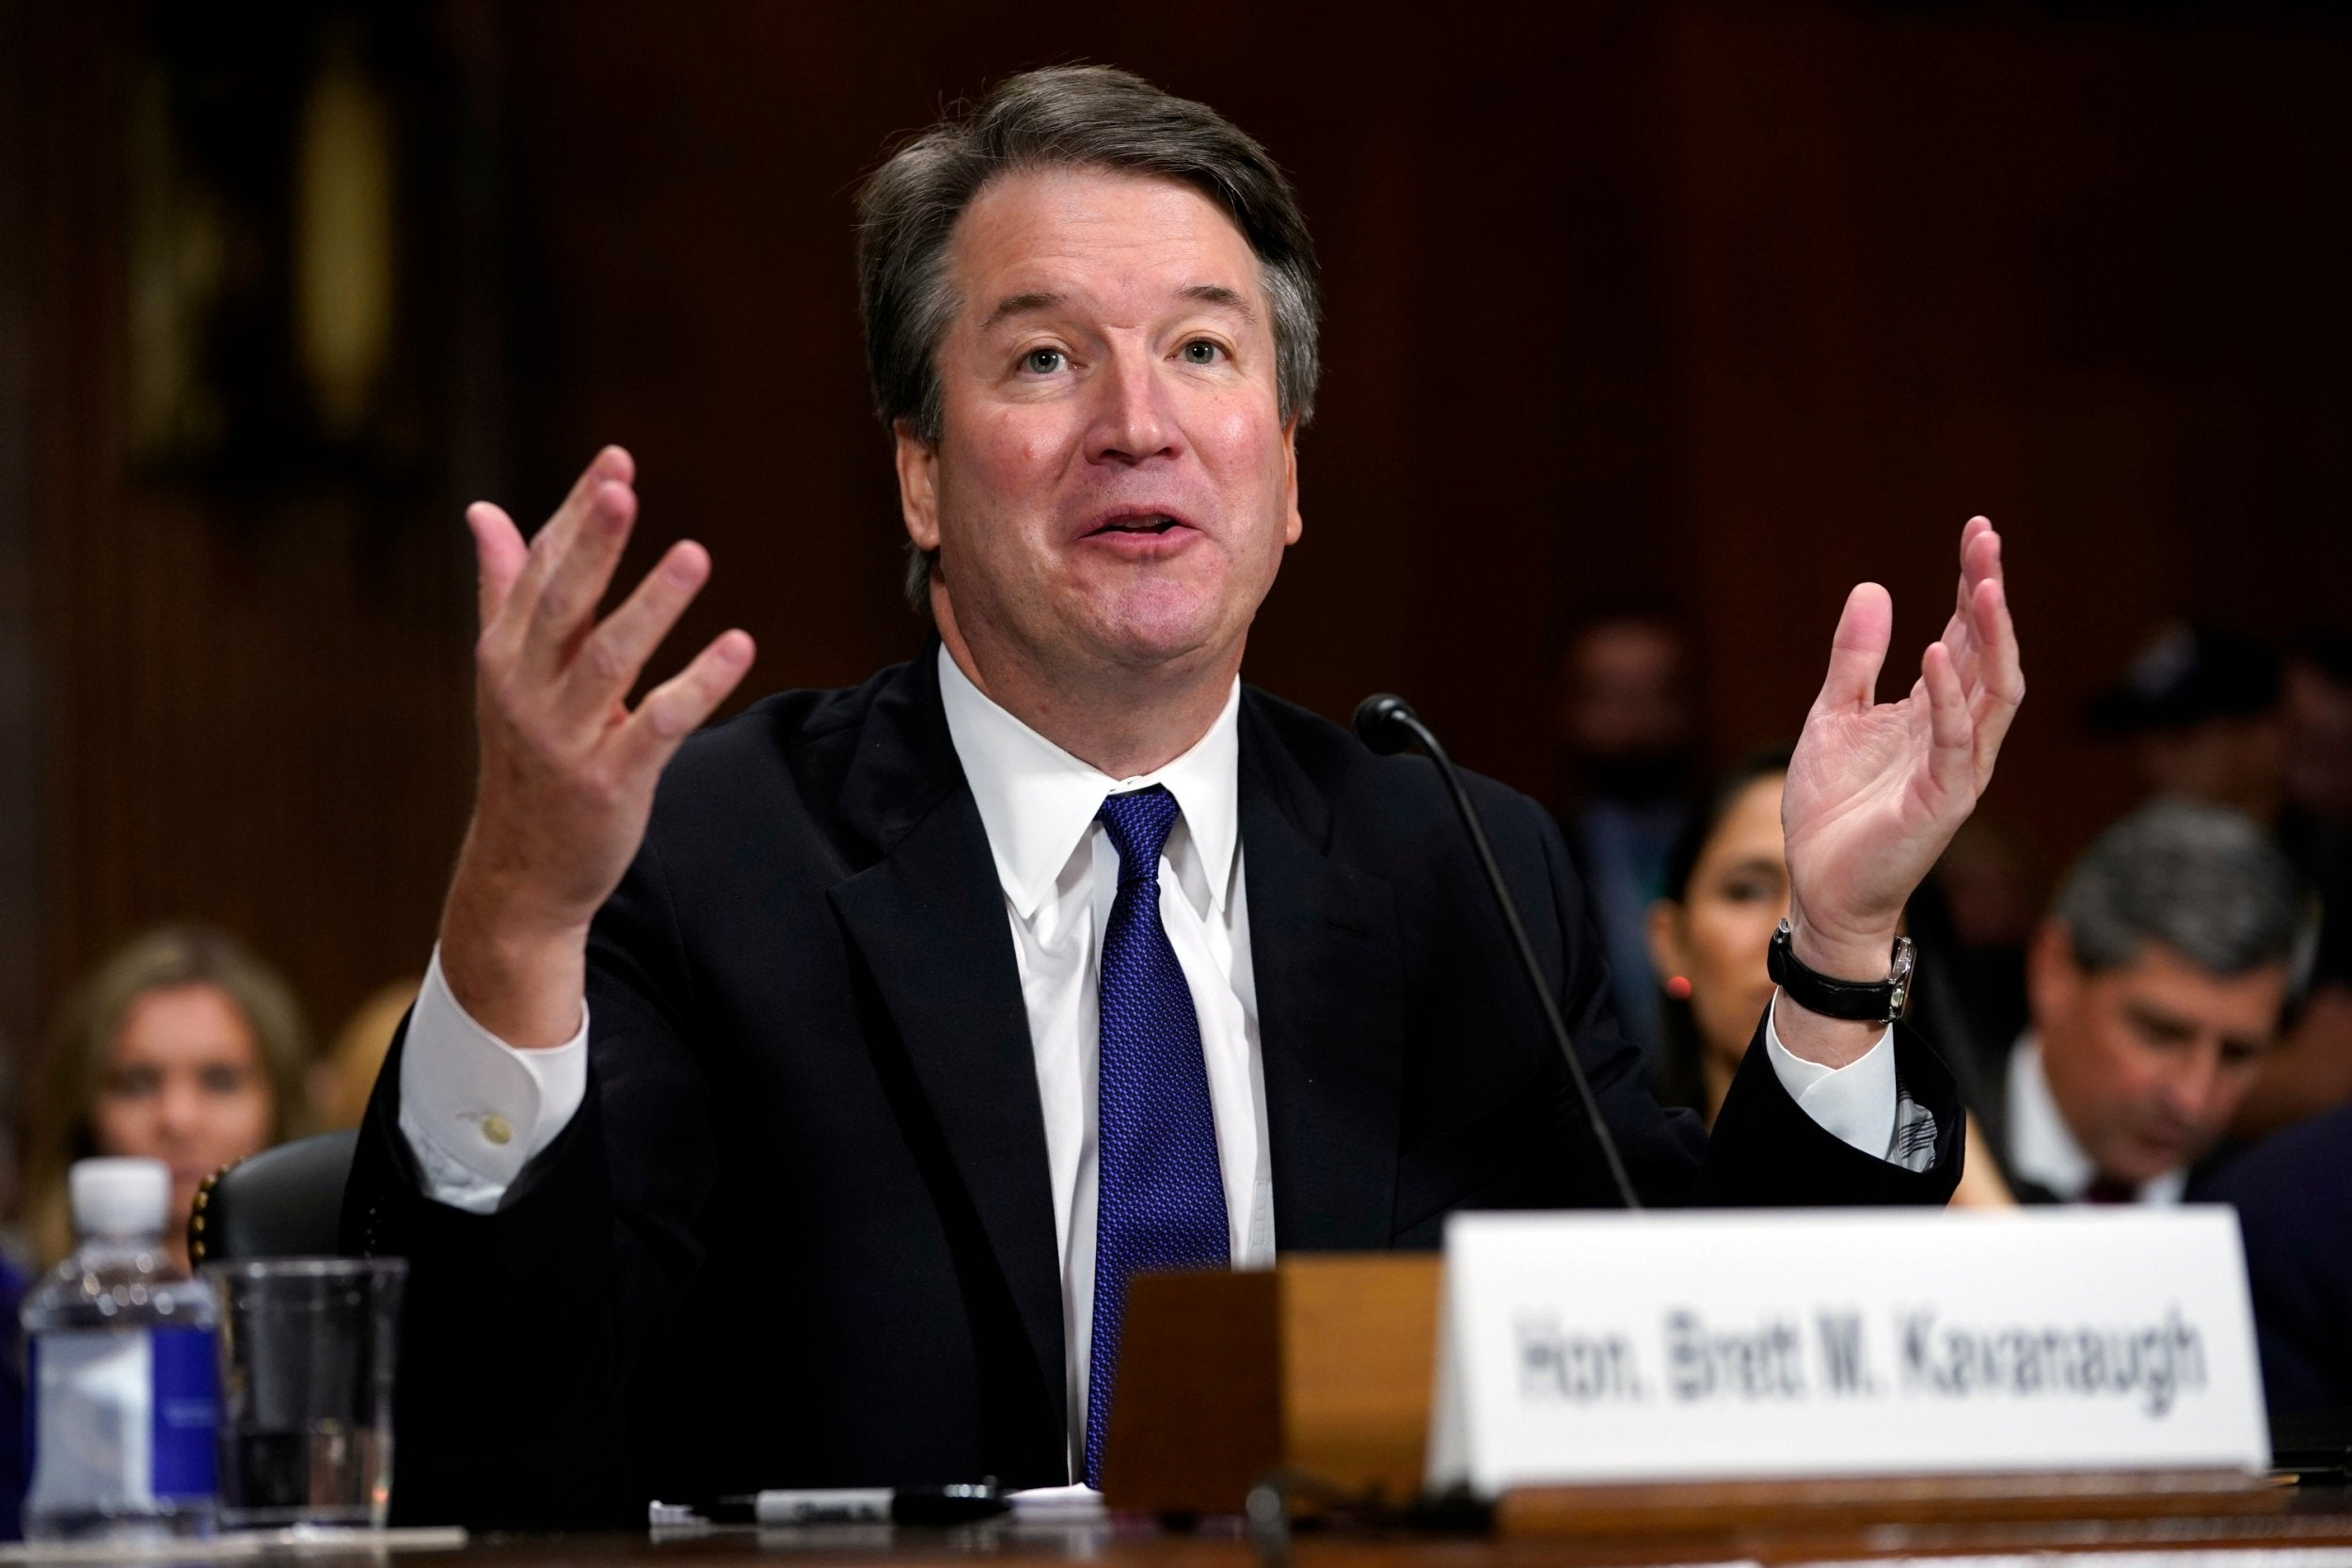 d8eed53b656 Brett Kavanaugh confirmed to Supreme Court amid widespread outcry over  sexual assault allegations